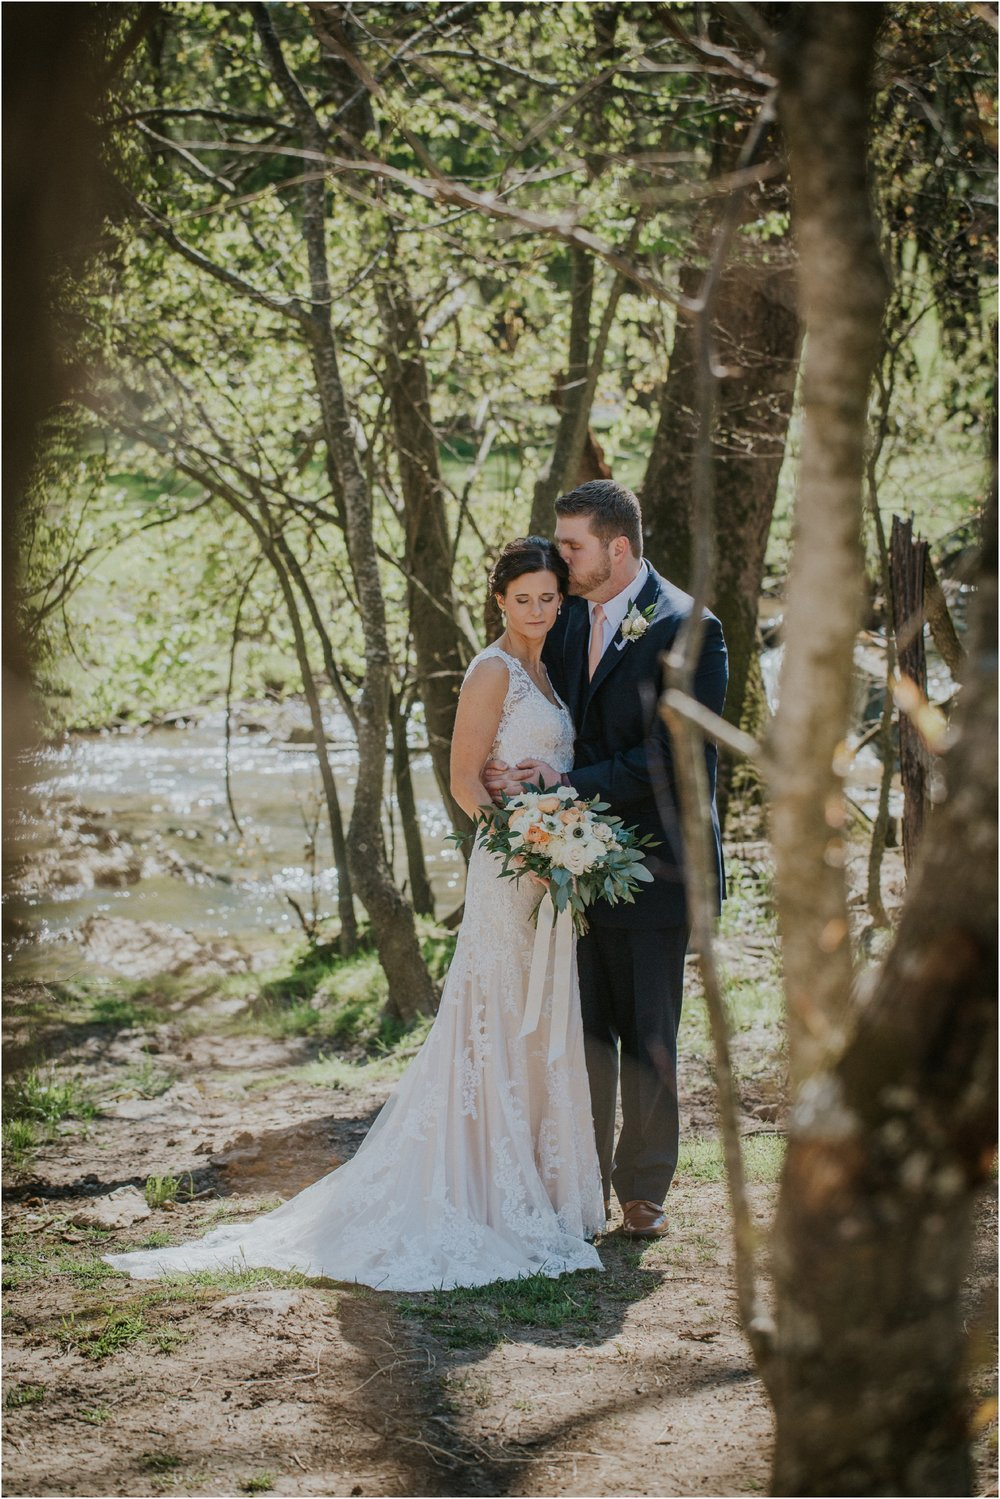 millstone-limestone-tn-tennessee-rustic-outdoors-pastel-lodge-cabin-venue-wedding-katy-sergent-photographer_0062.jpg